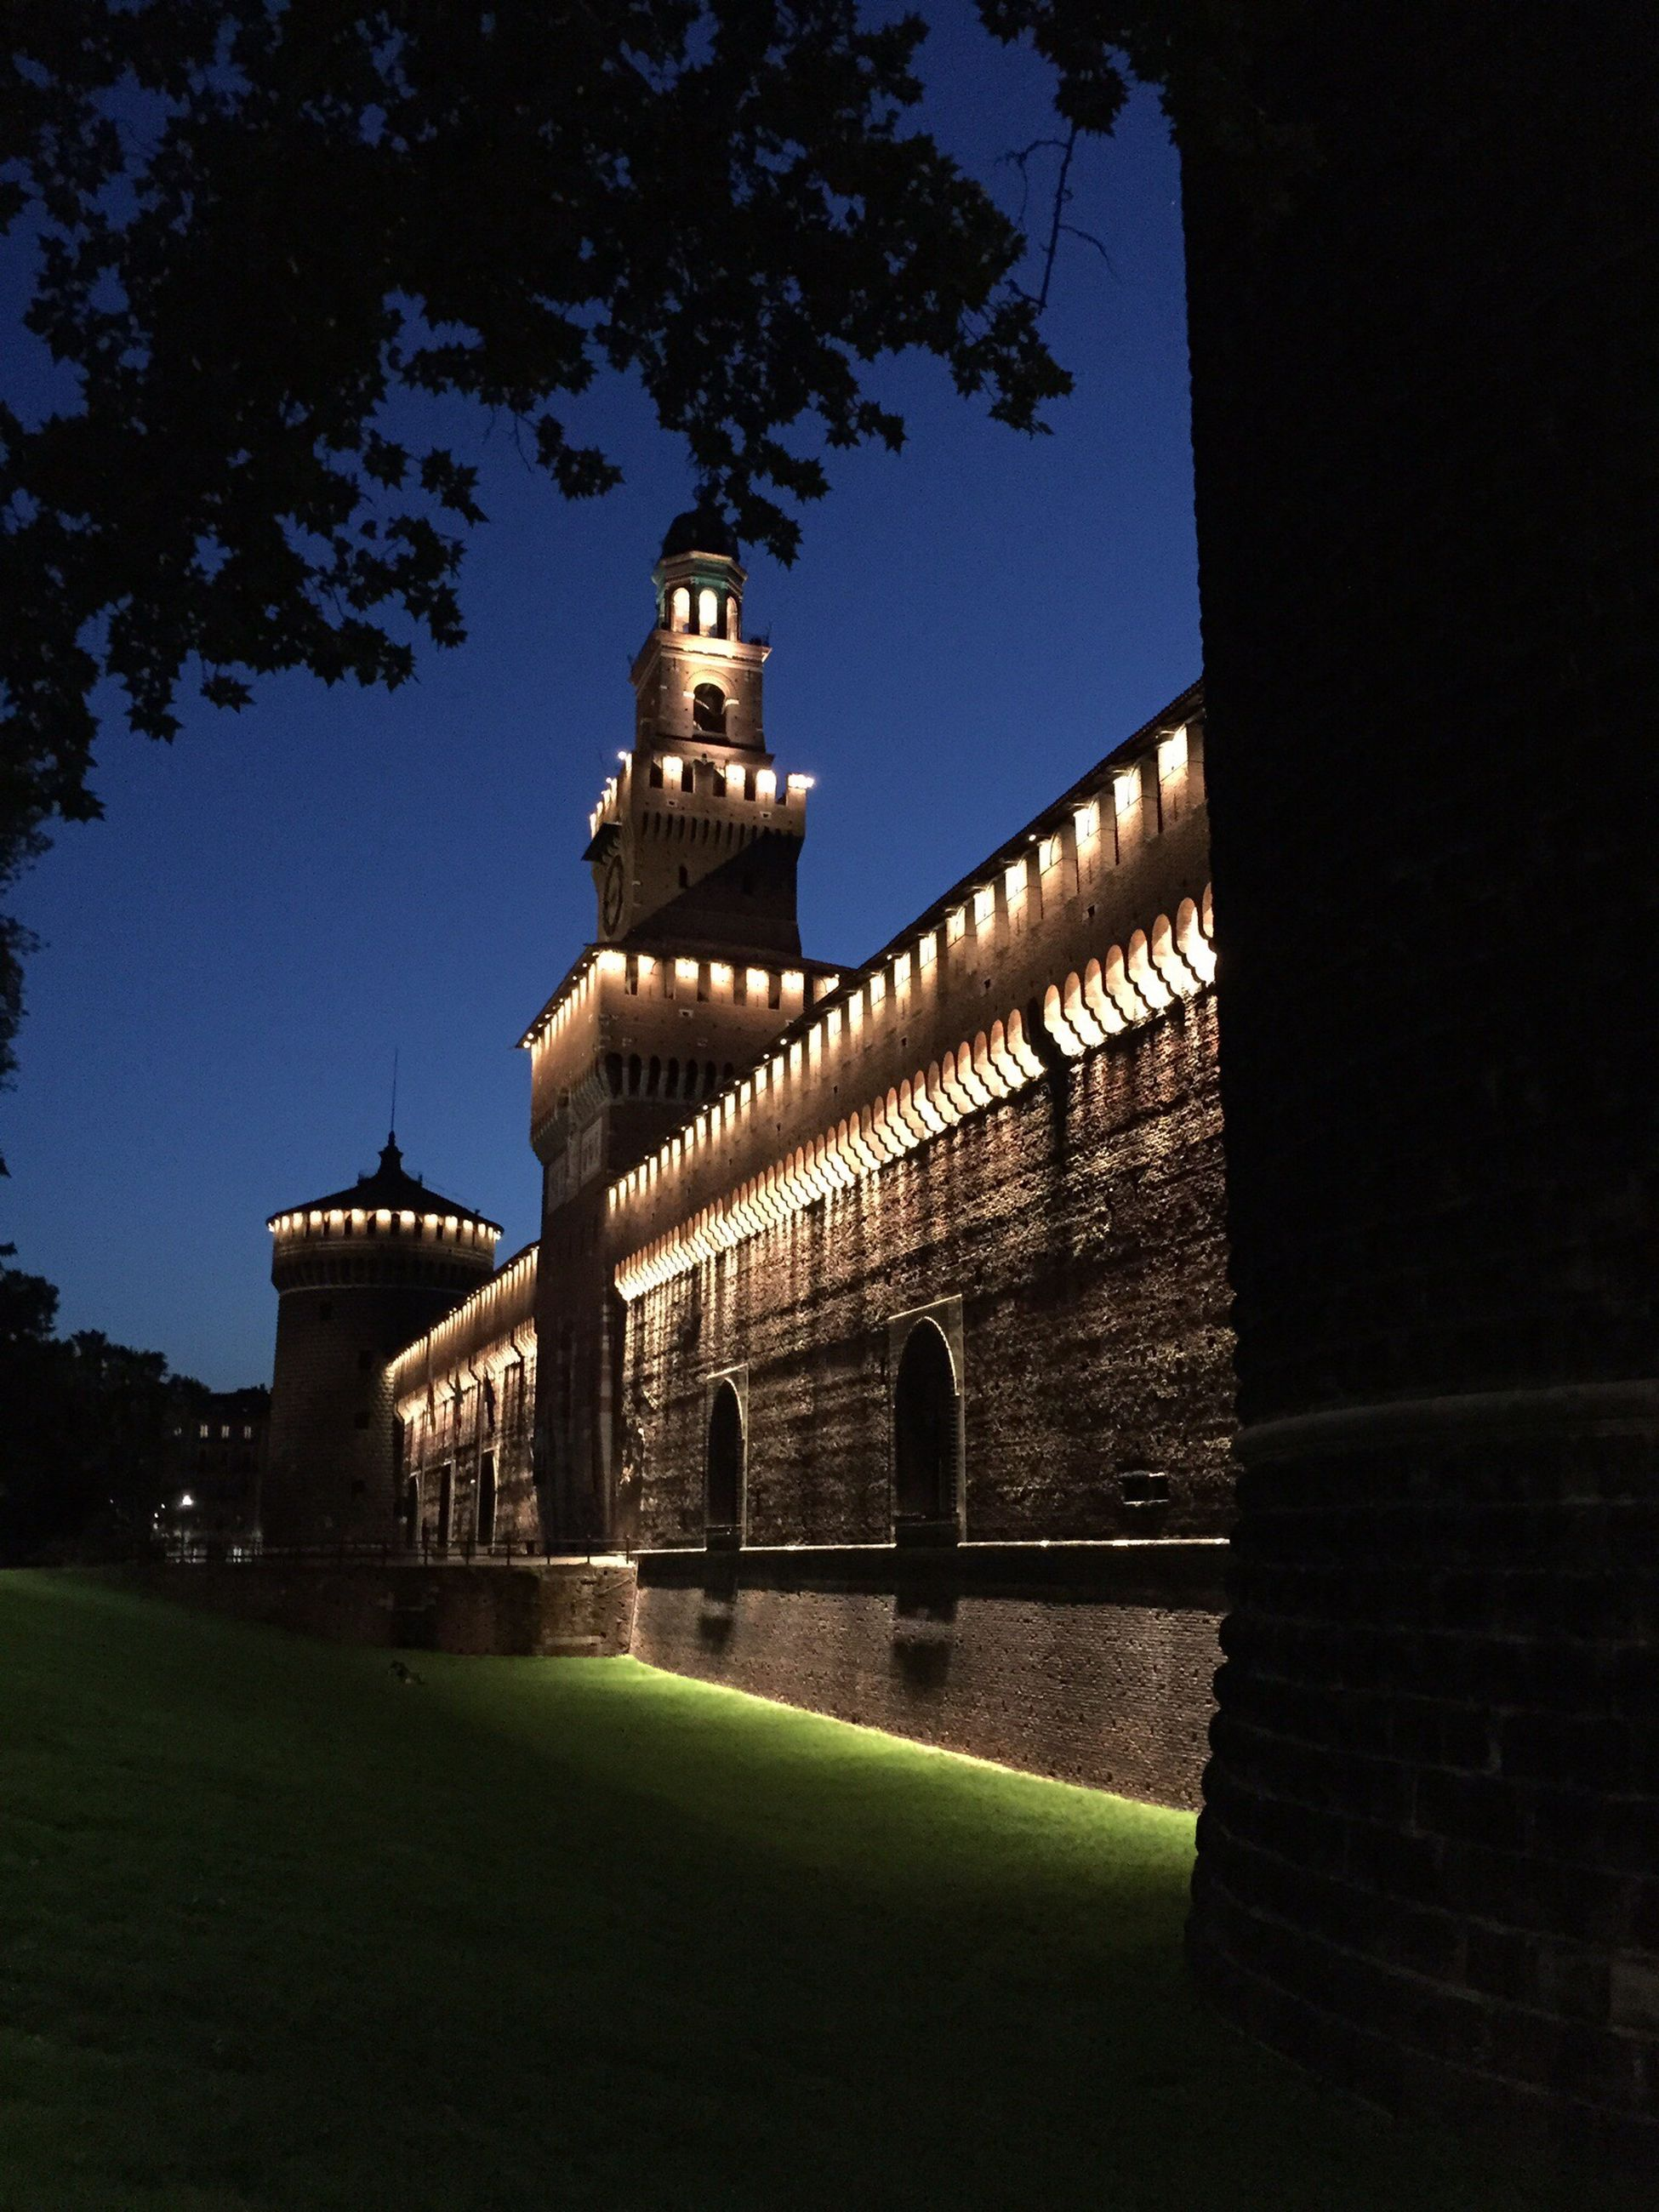 architecture, built structure, building exterior, clear sky, tree, history, night, famous place, outdoors, travel destinations, grass, exterior, low angle view, place of worship, copy space, green color, sky, castle, arch, illuminated